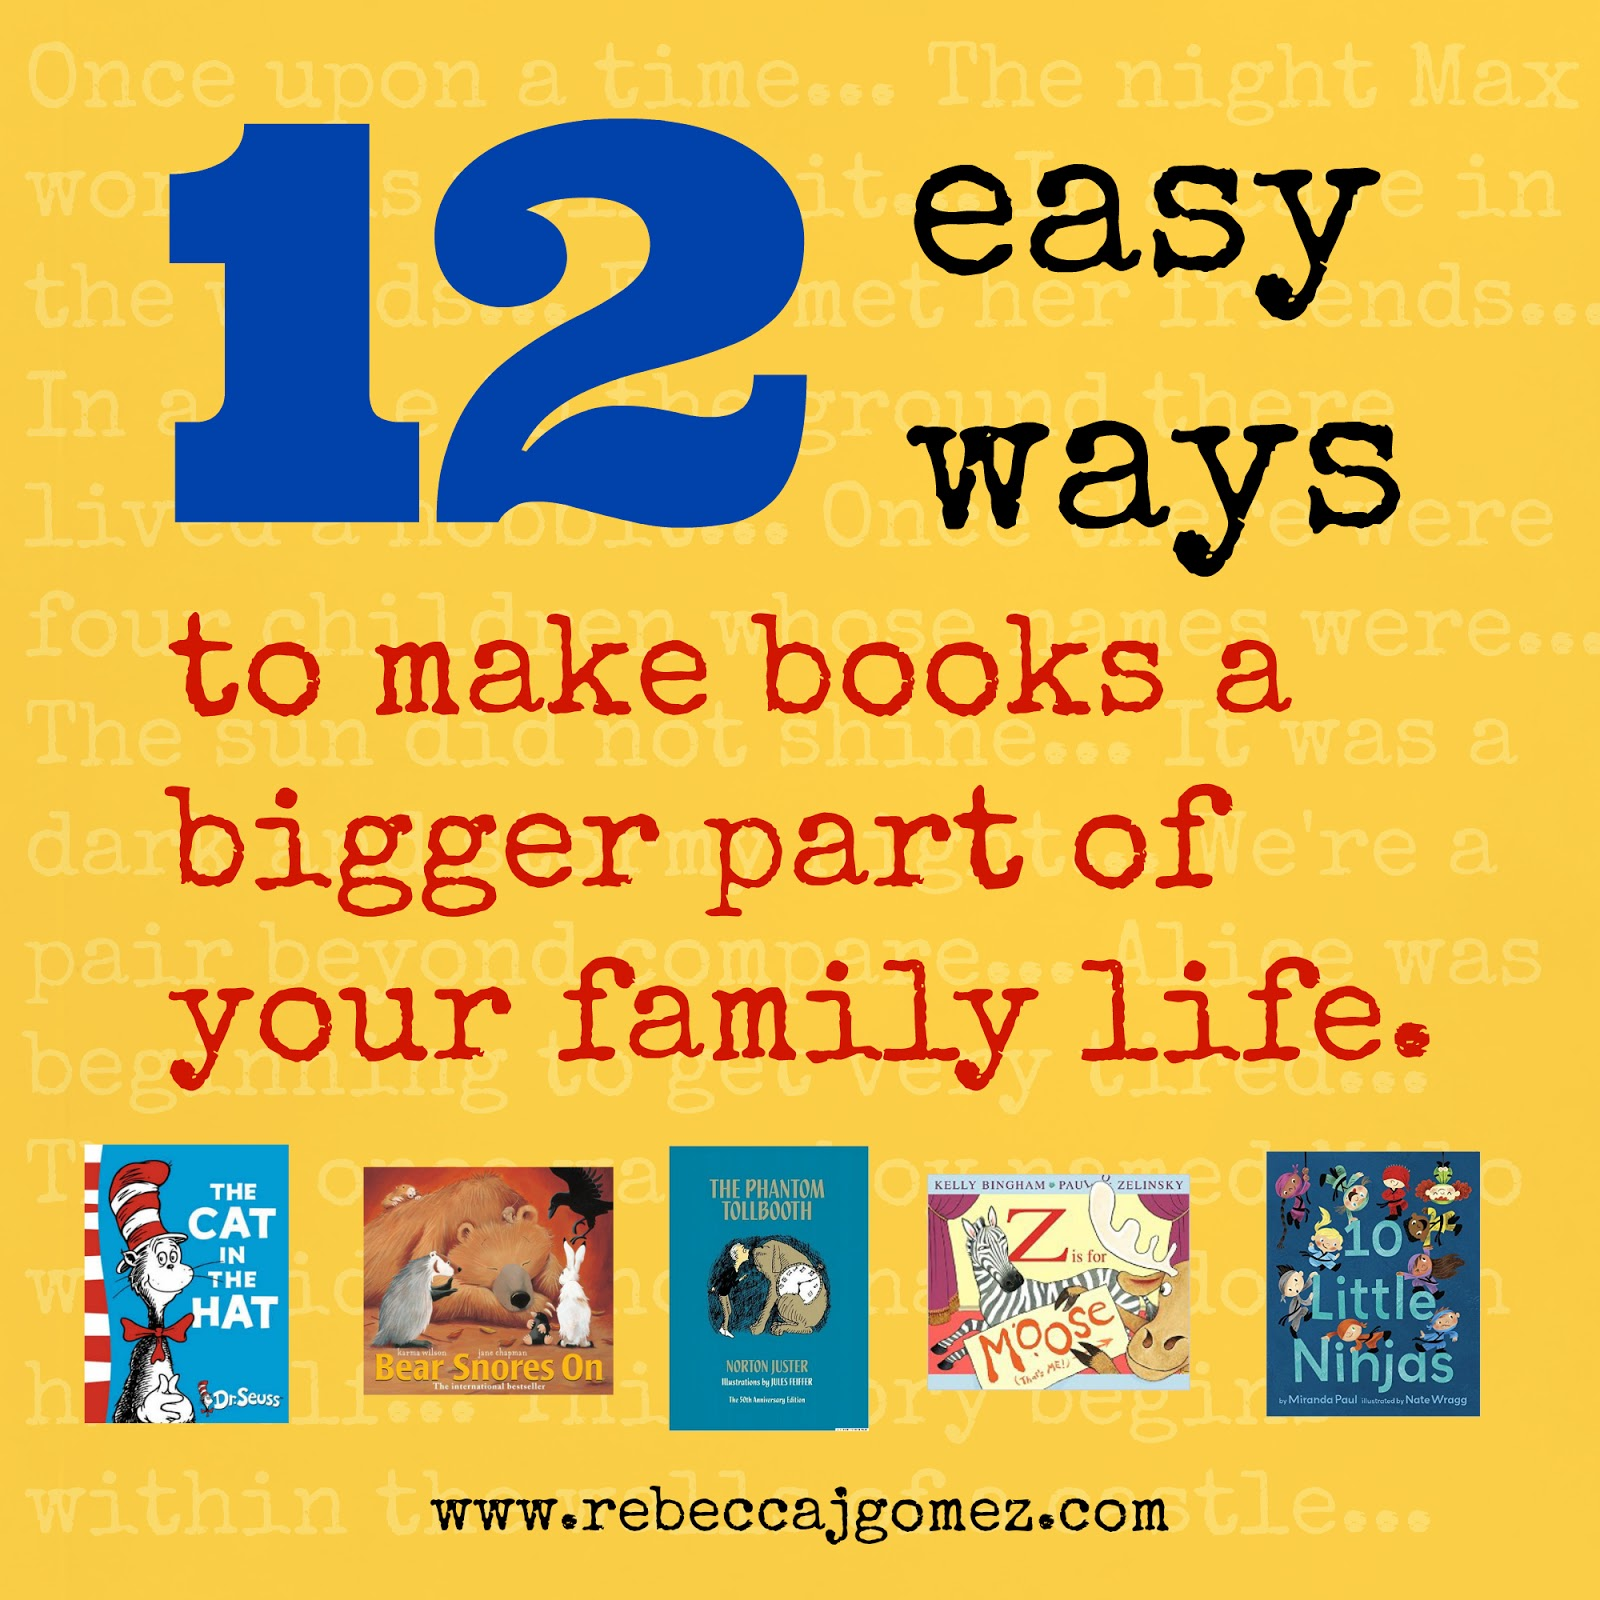 How To Make A Book About Your Life : Rebecca j gomez easy ways to make books a bigger part